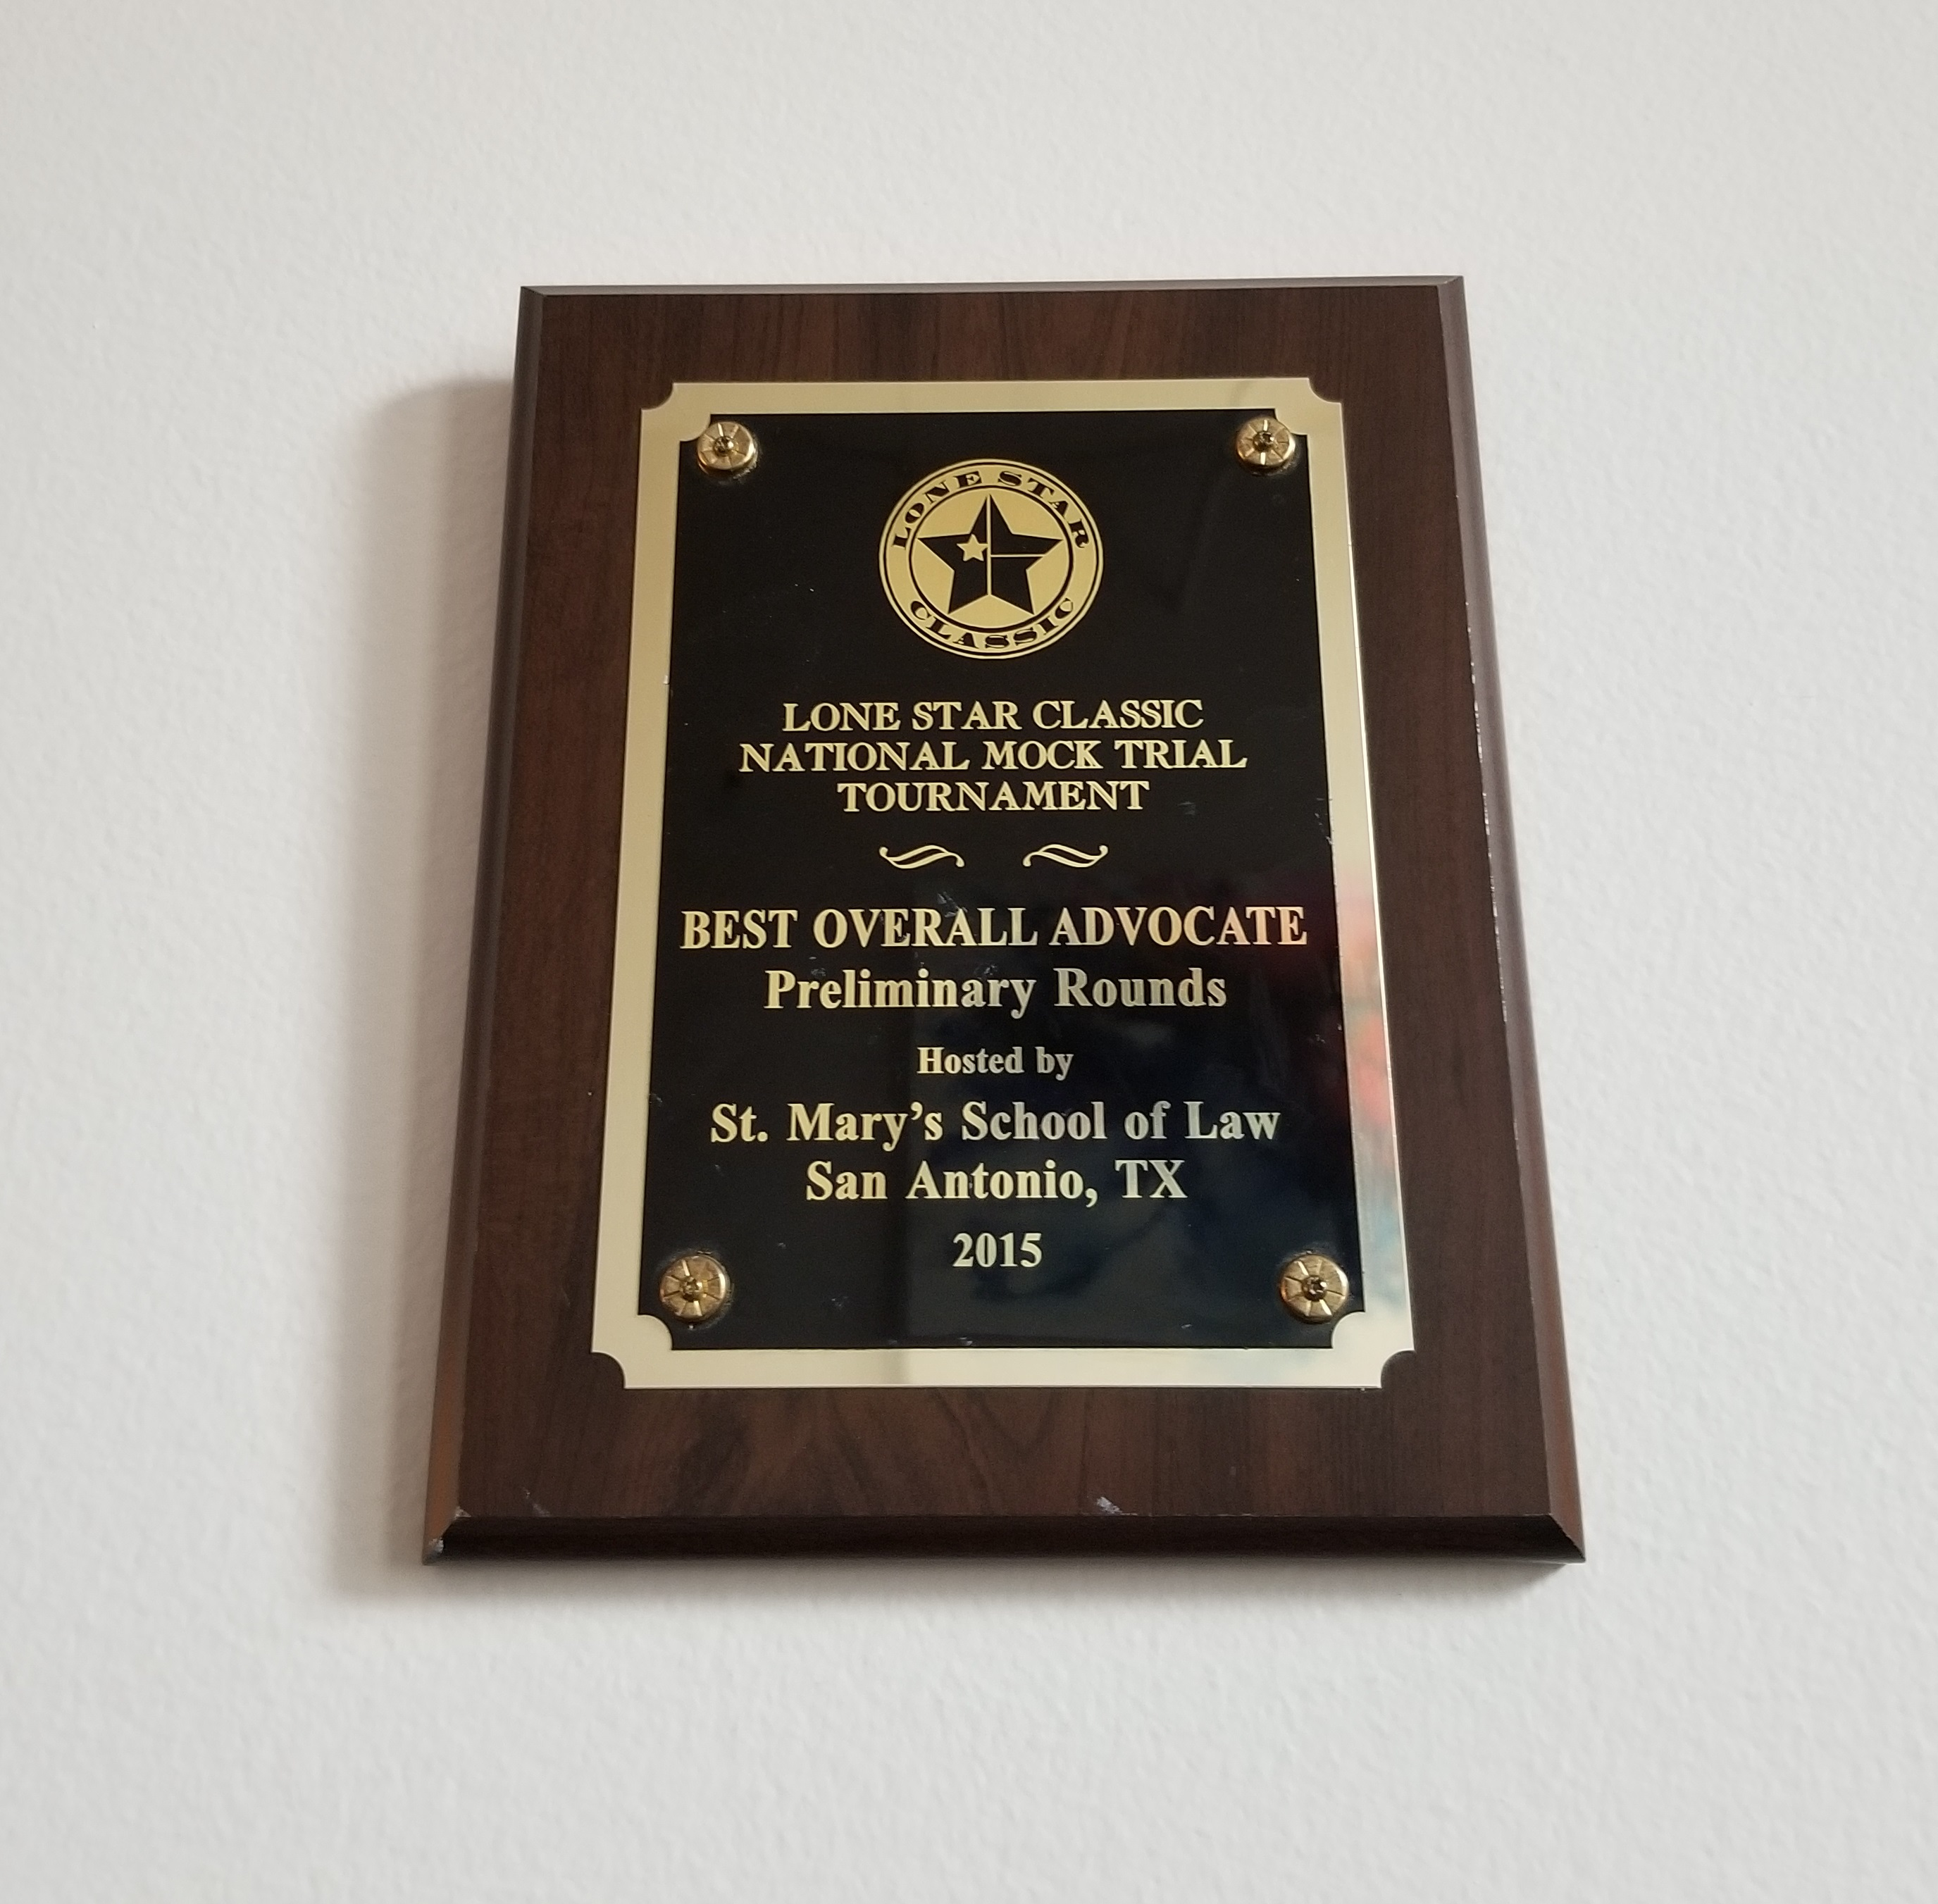 BEST OVERALL ADVOCATE AWARD